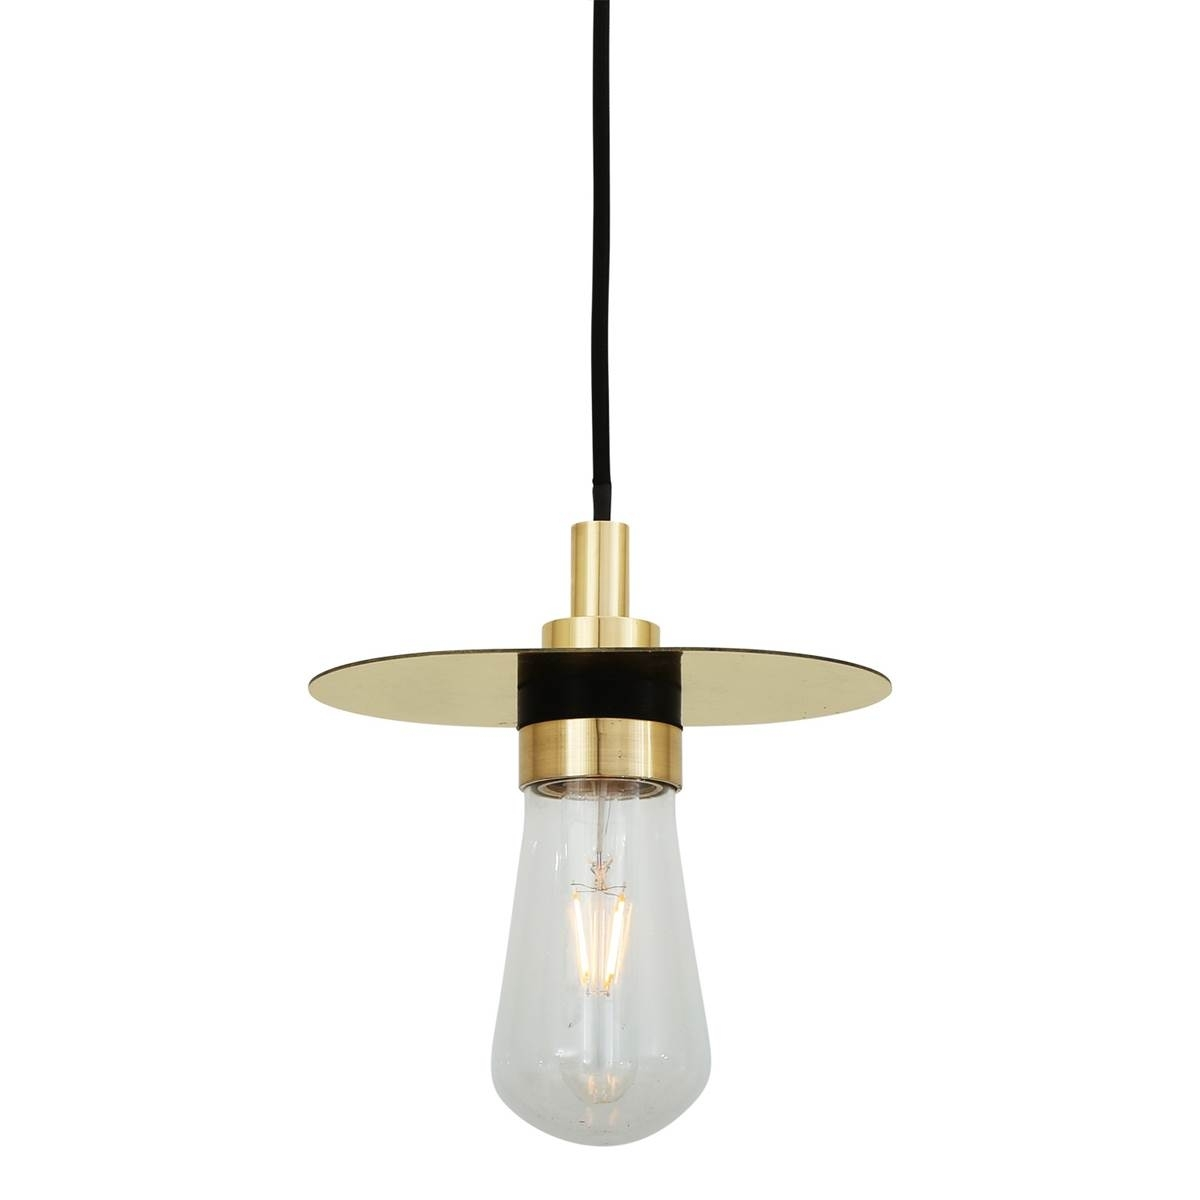 Outdoor Pendant Light Crystal Pendant Light' Brushed Nickel Mini With Outdoor Hanging Lights At Amazon (View 14 of 15)